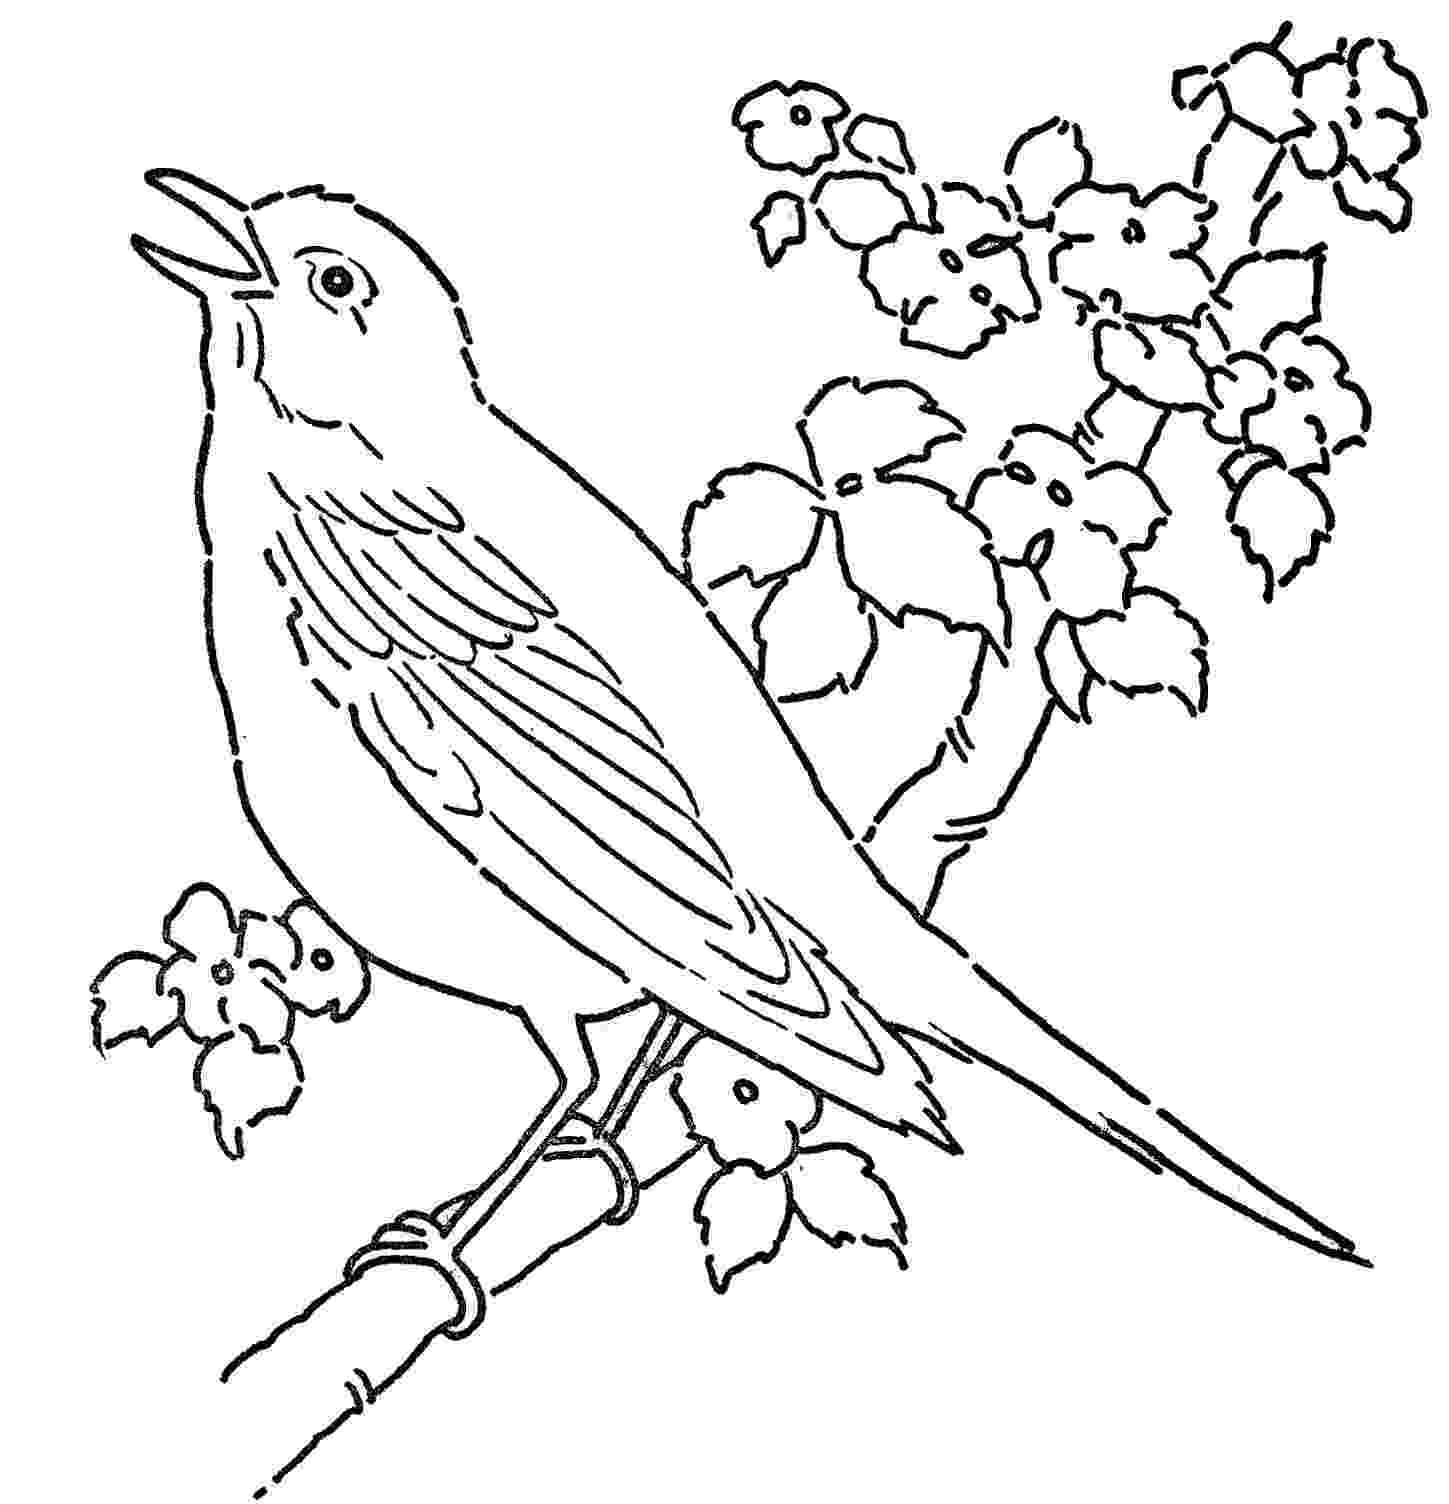 coloring book birds pictures free online coloring pages thecolor coloring pictures birds book